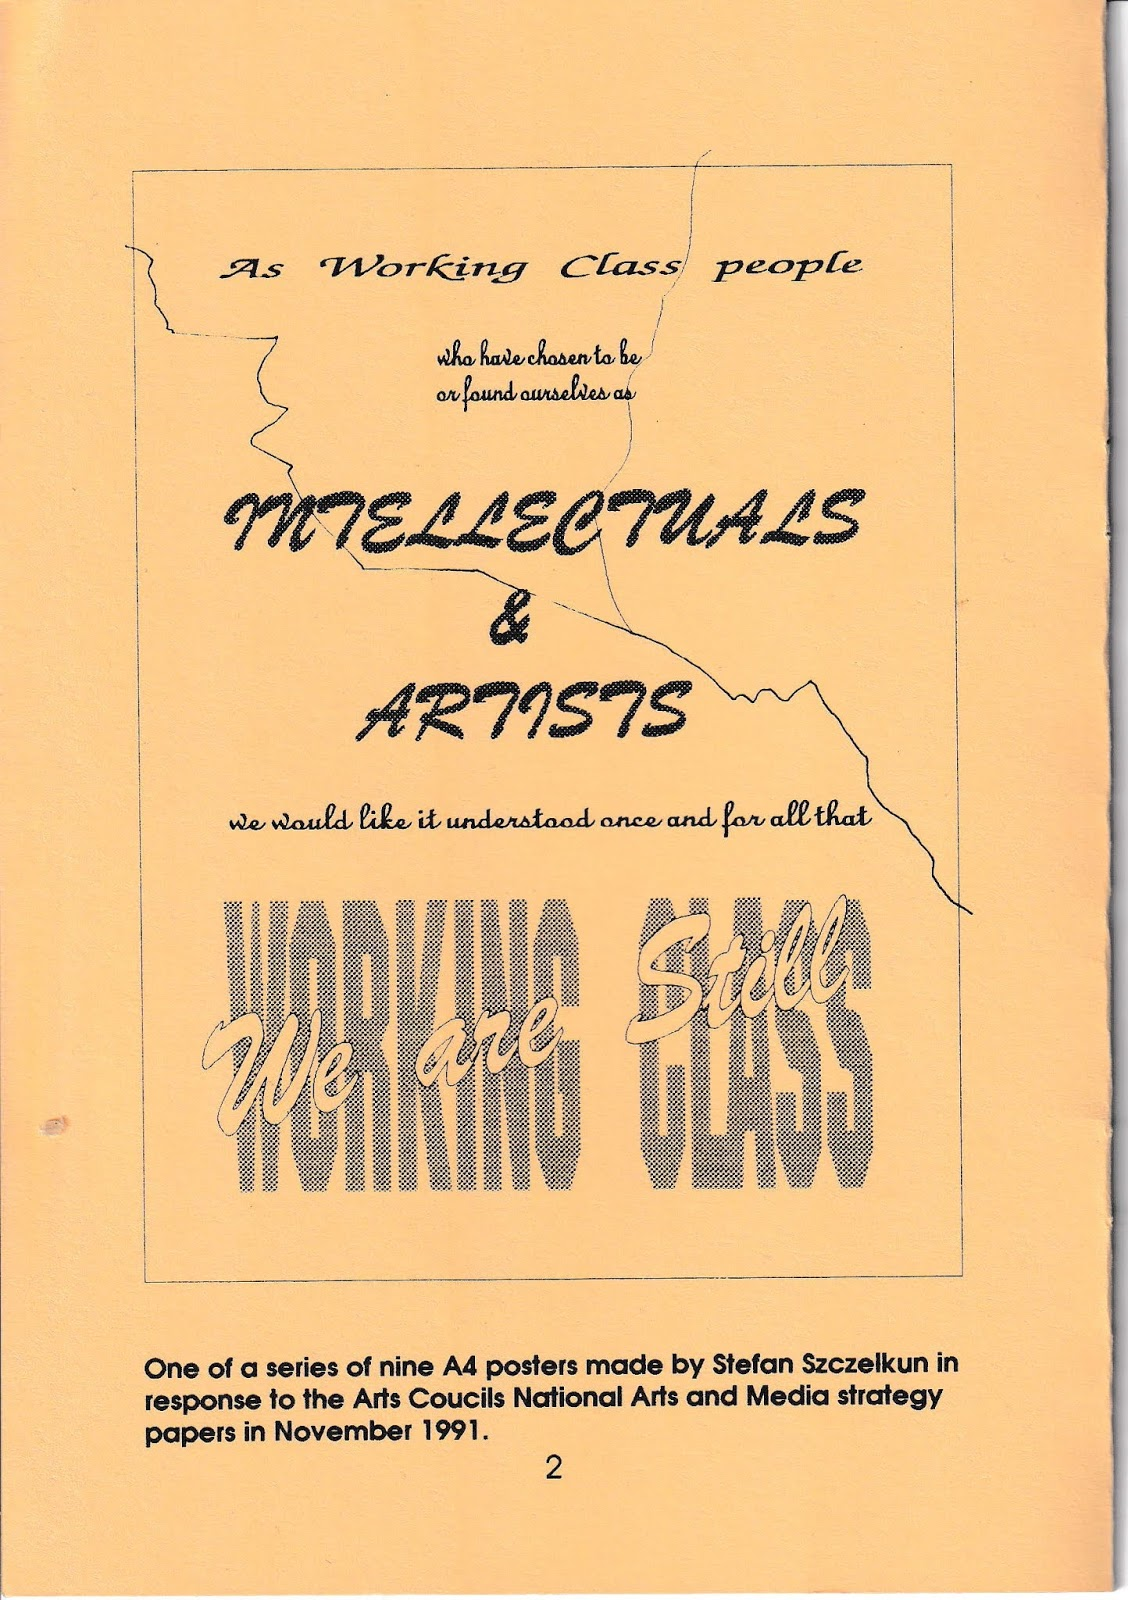 Activating Brixton Art Gallery, 1983-86: Archives and